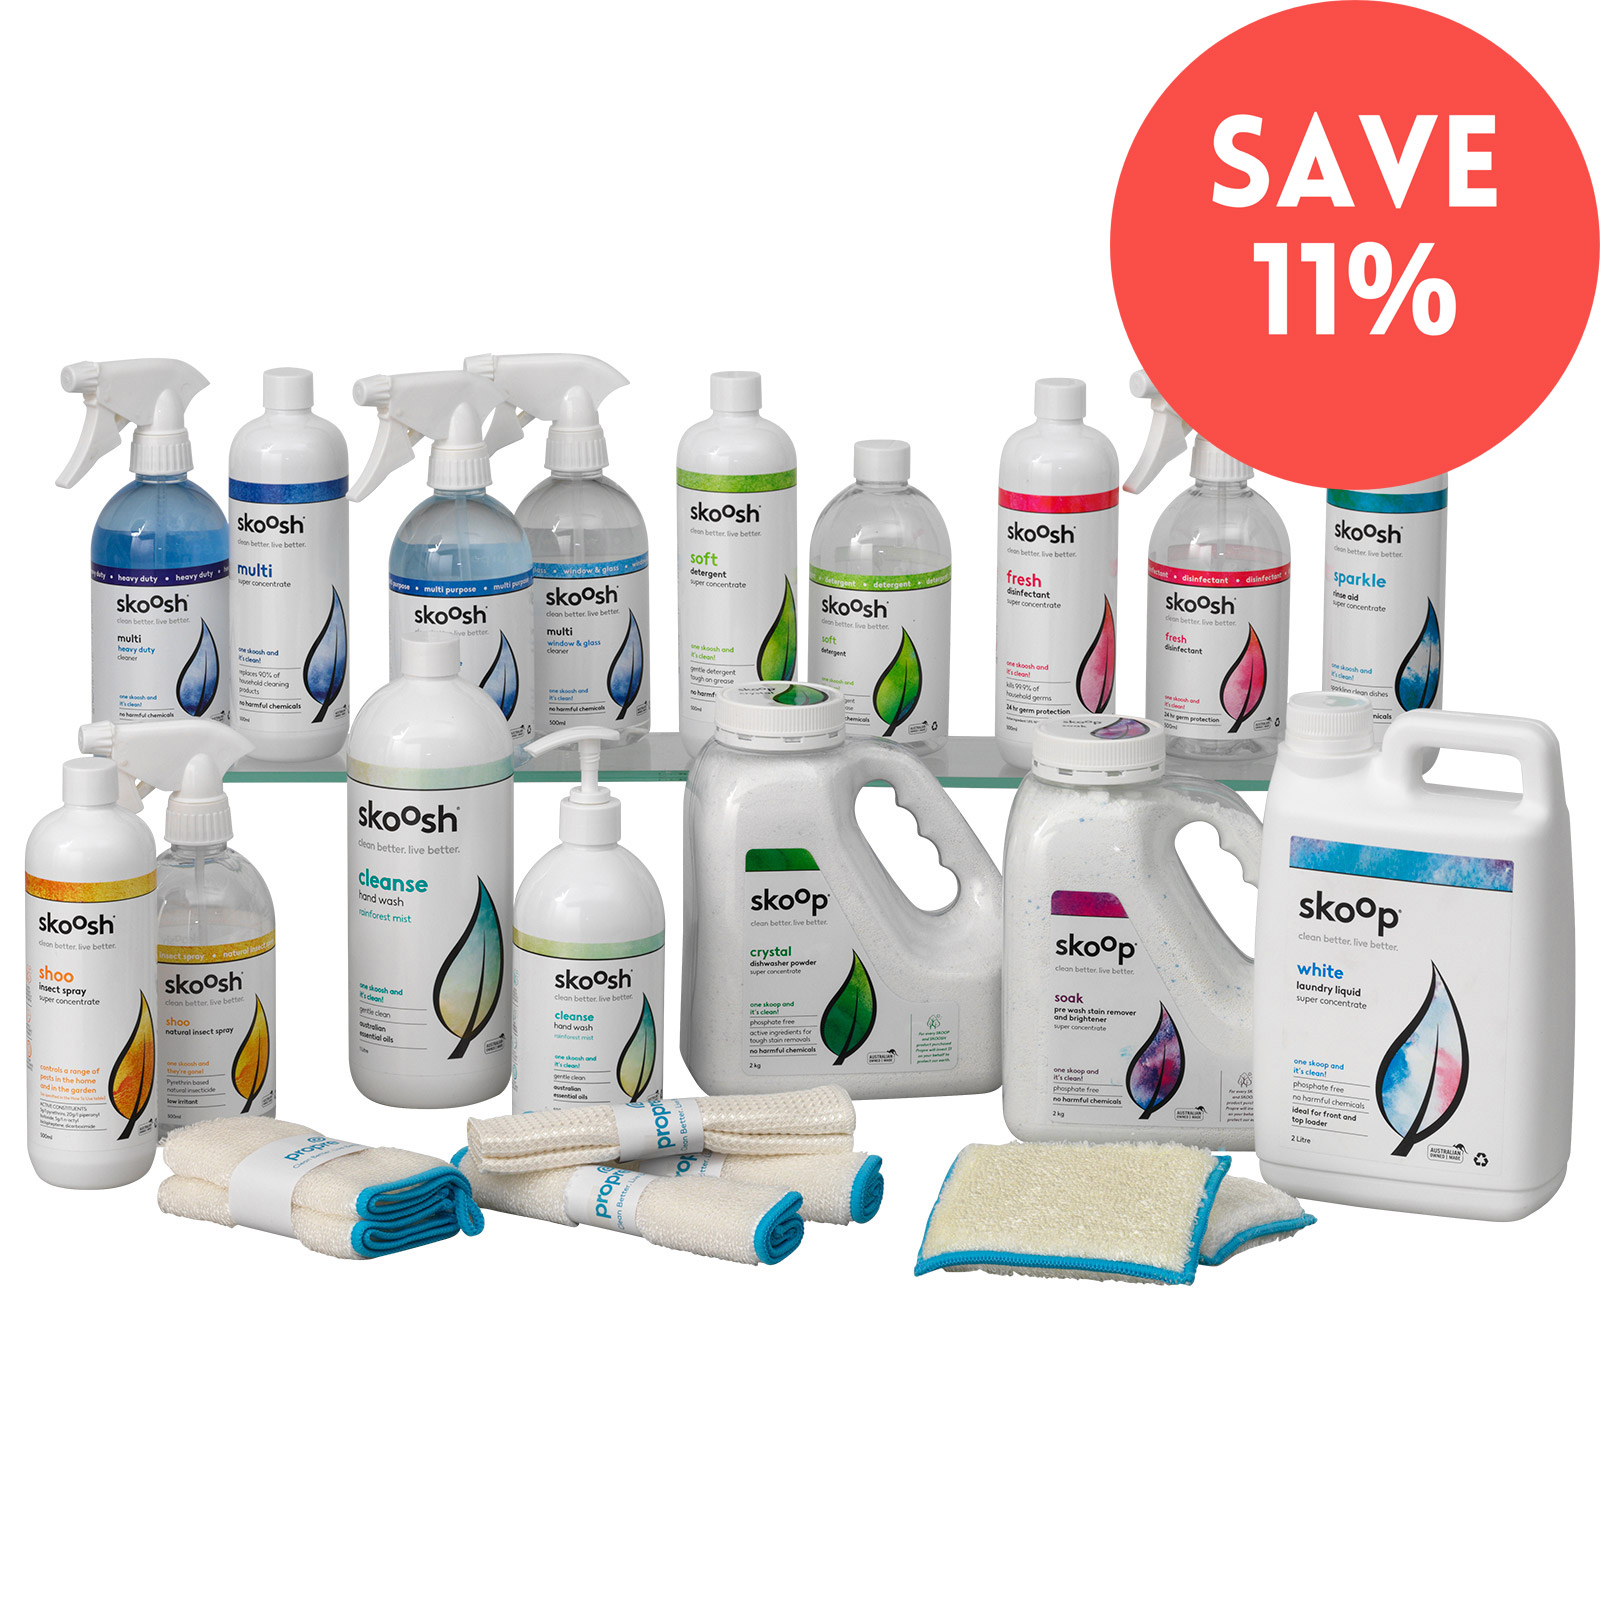 Propre Value Pack - Savings in Pack than Individual